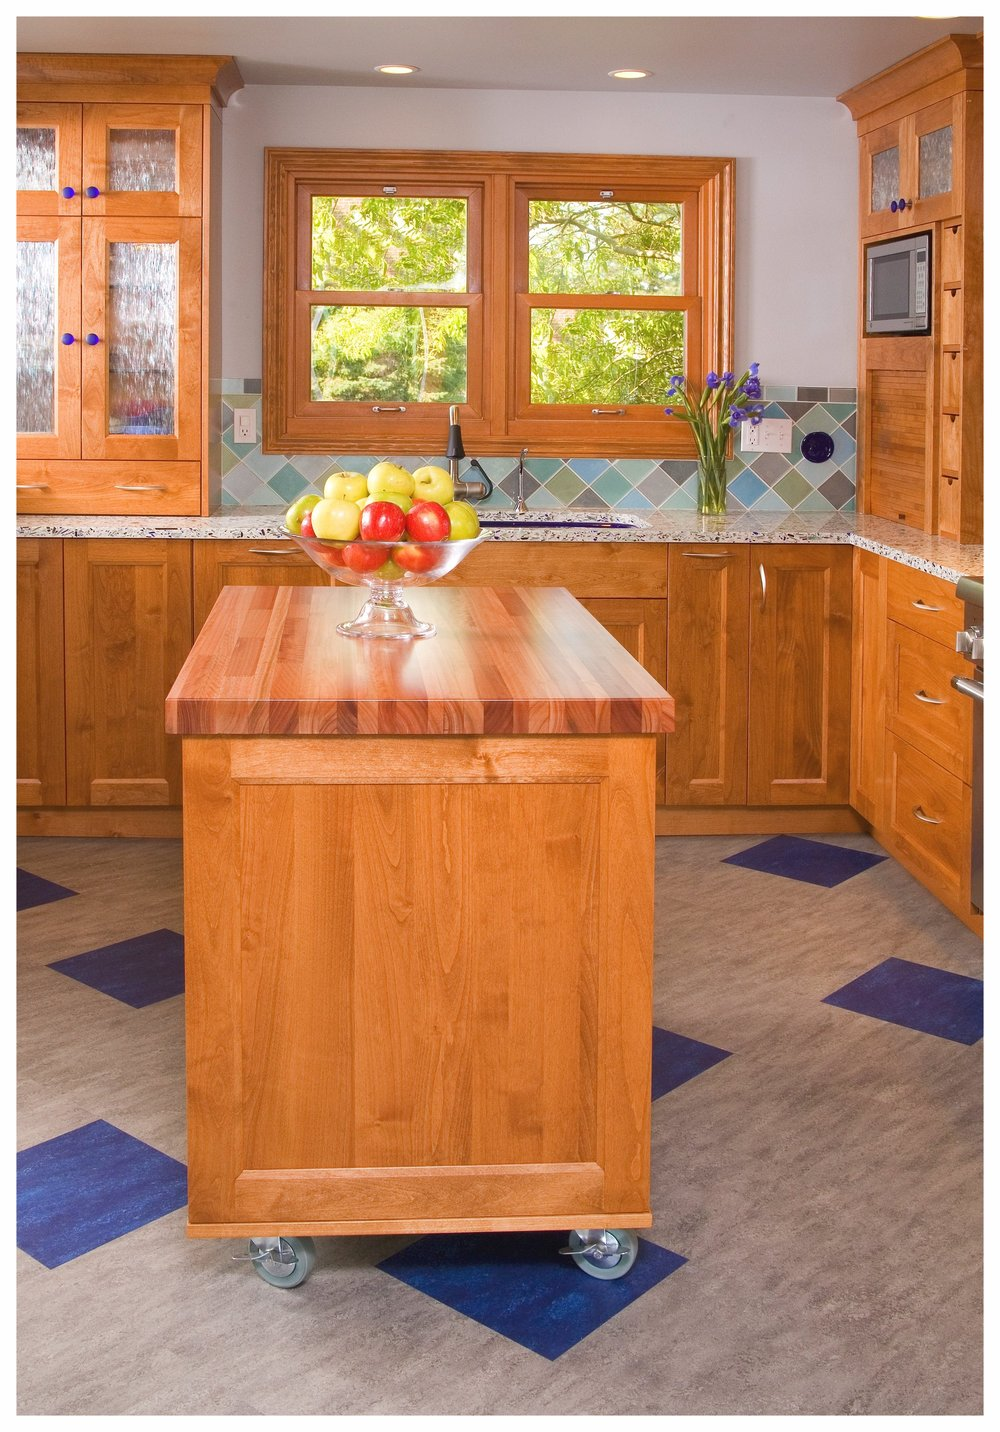 Seattle Sand Point Cottage Kitchen 5.jpg